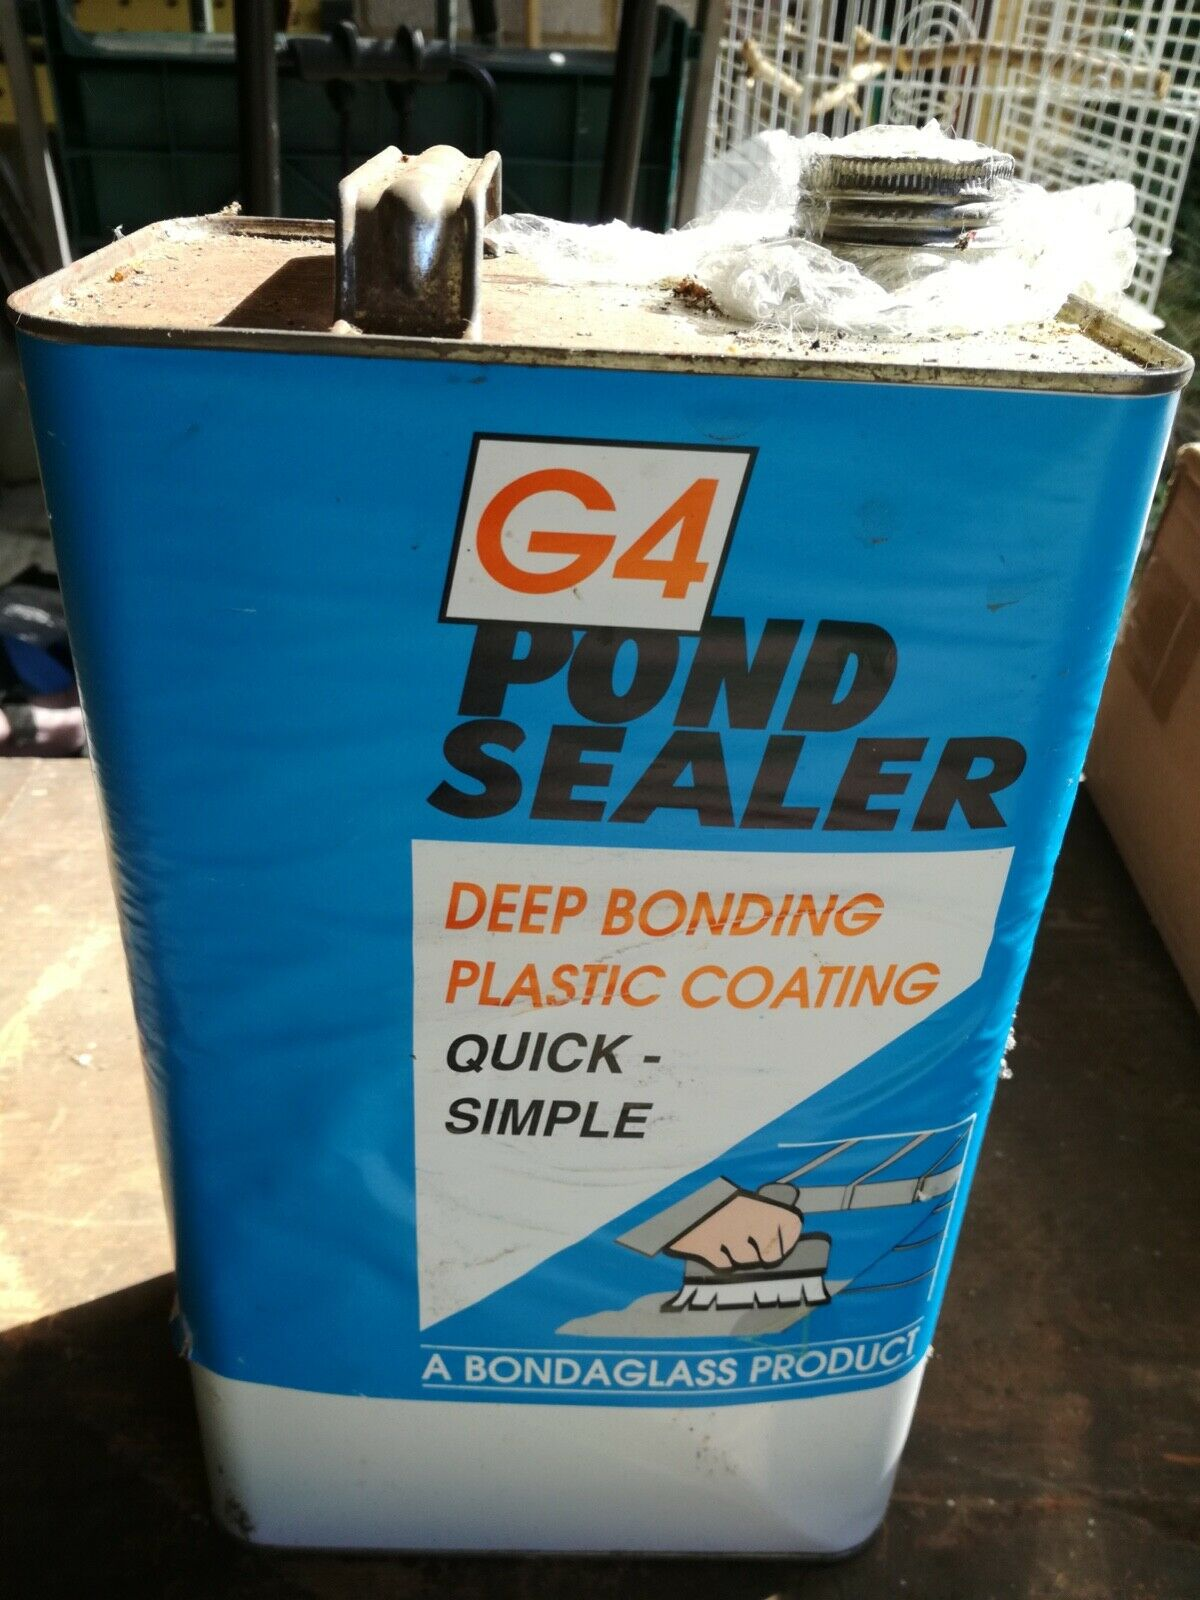 G4 POND SEALER DEEP BONDING PLASTIC COATING - too heavy -- collection only